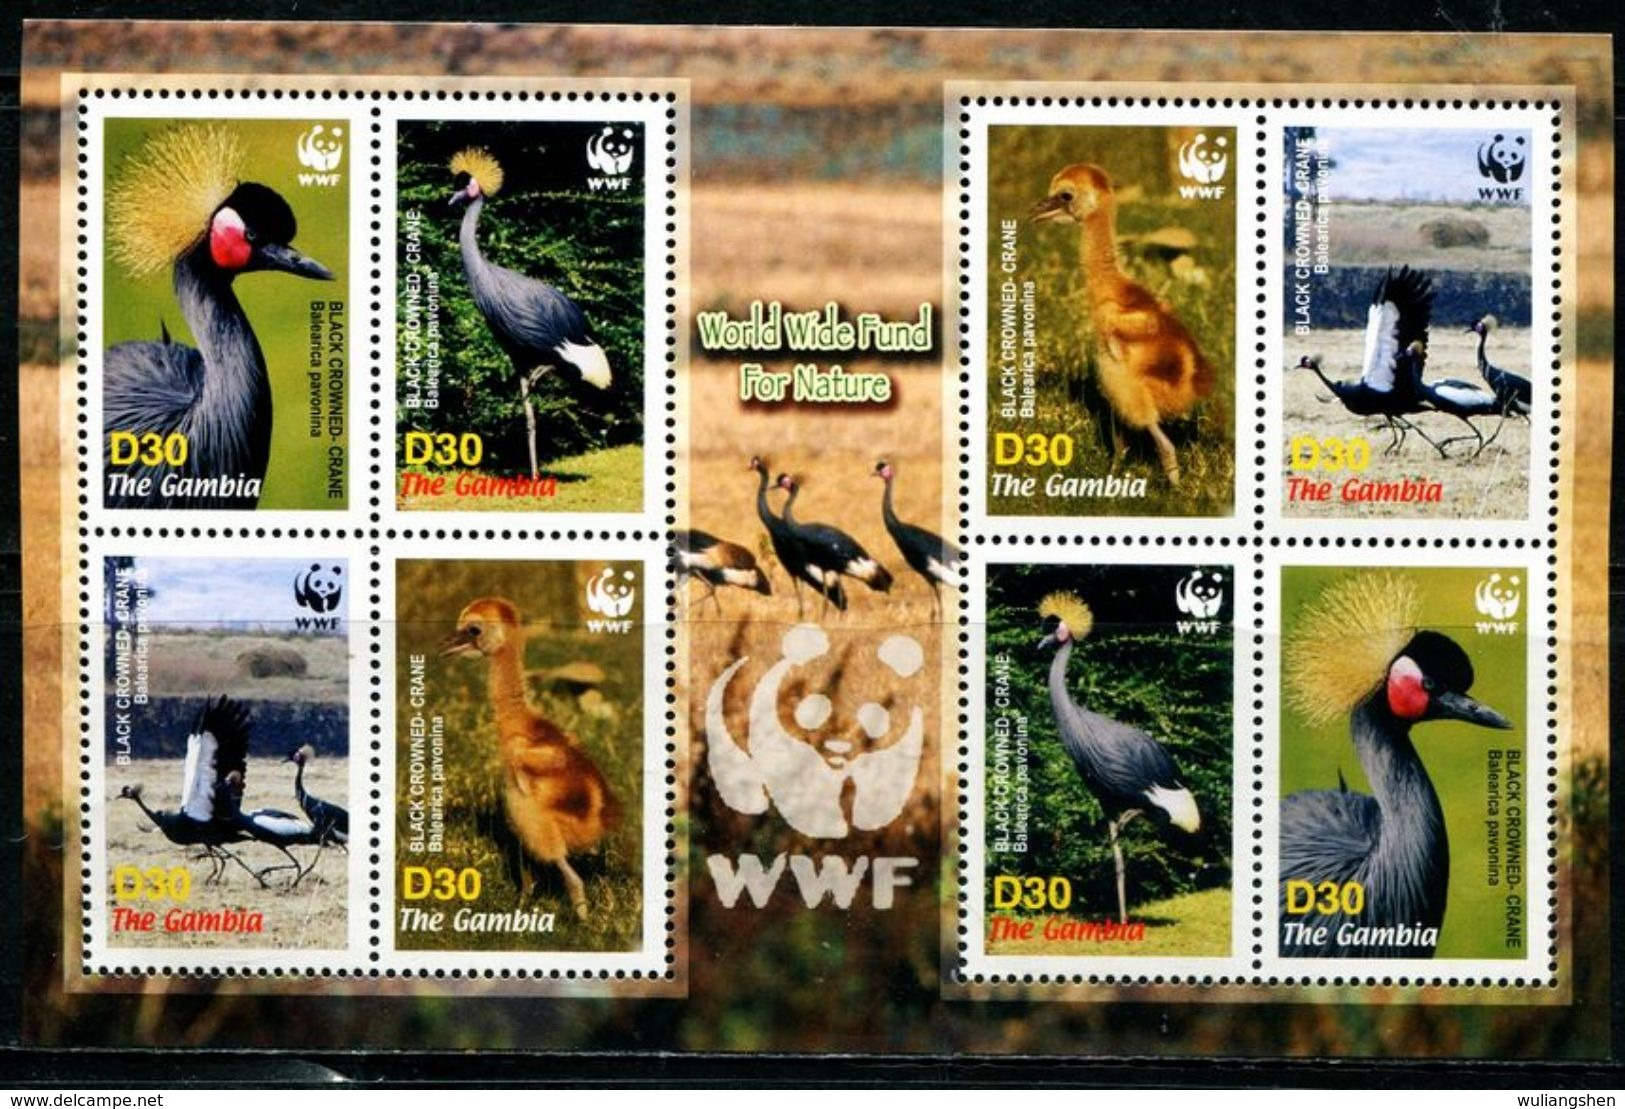 CR0065 Gambia 2006 Bird Of Prey Crowned Sheet WWF MNH - Unused Stamps